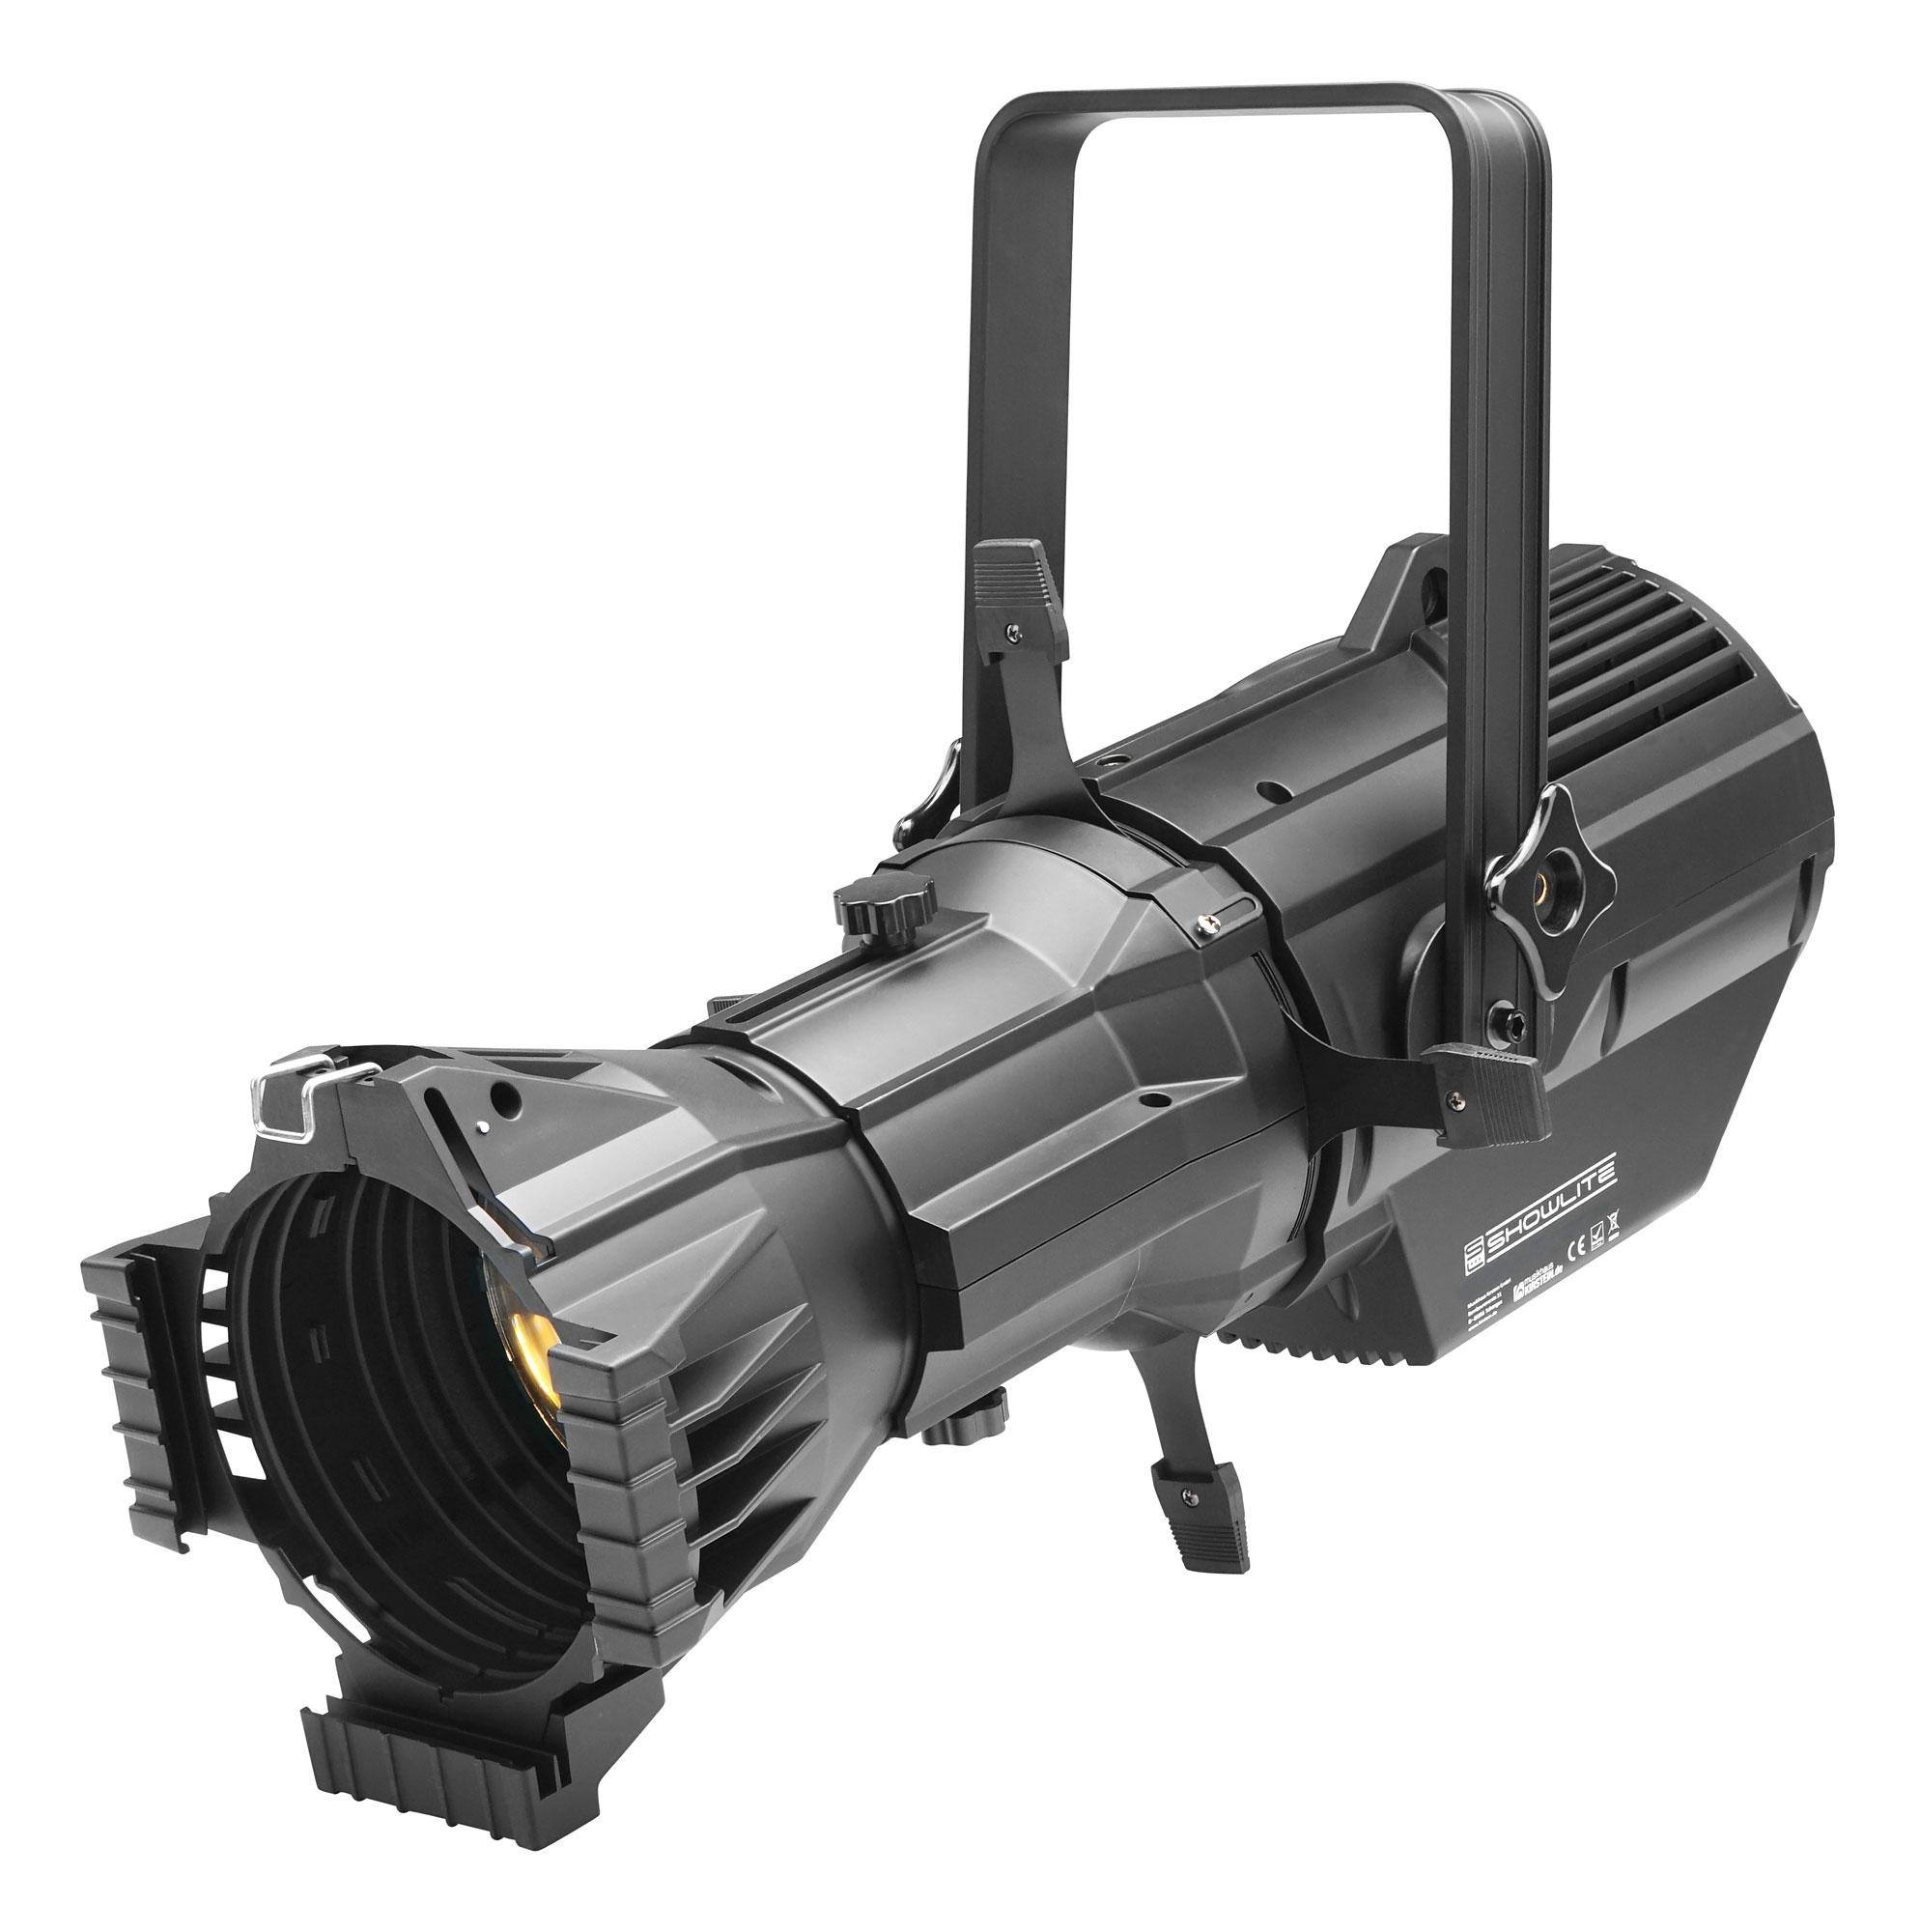 Showlite CPR 60|36 W LED Profilscheinwerfer 36° 200 Watt